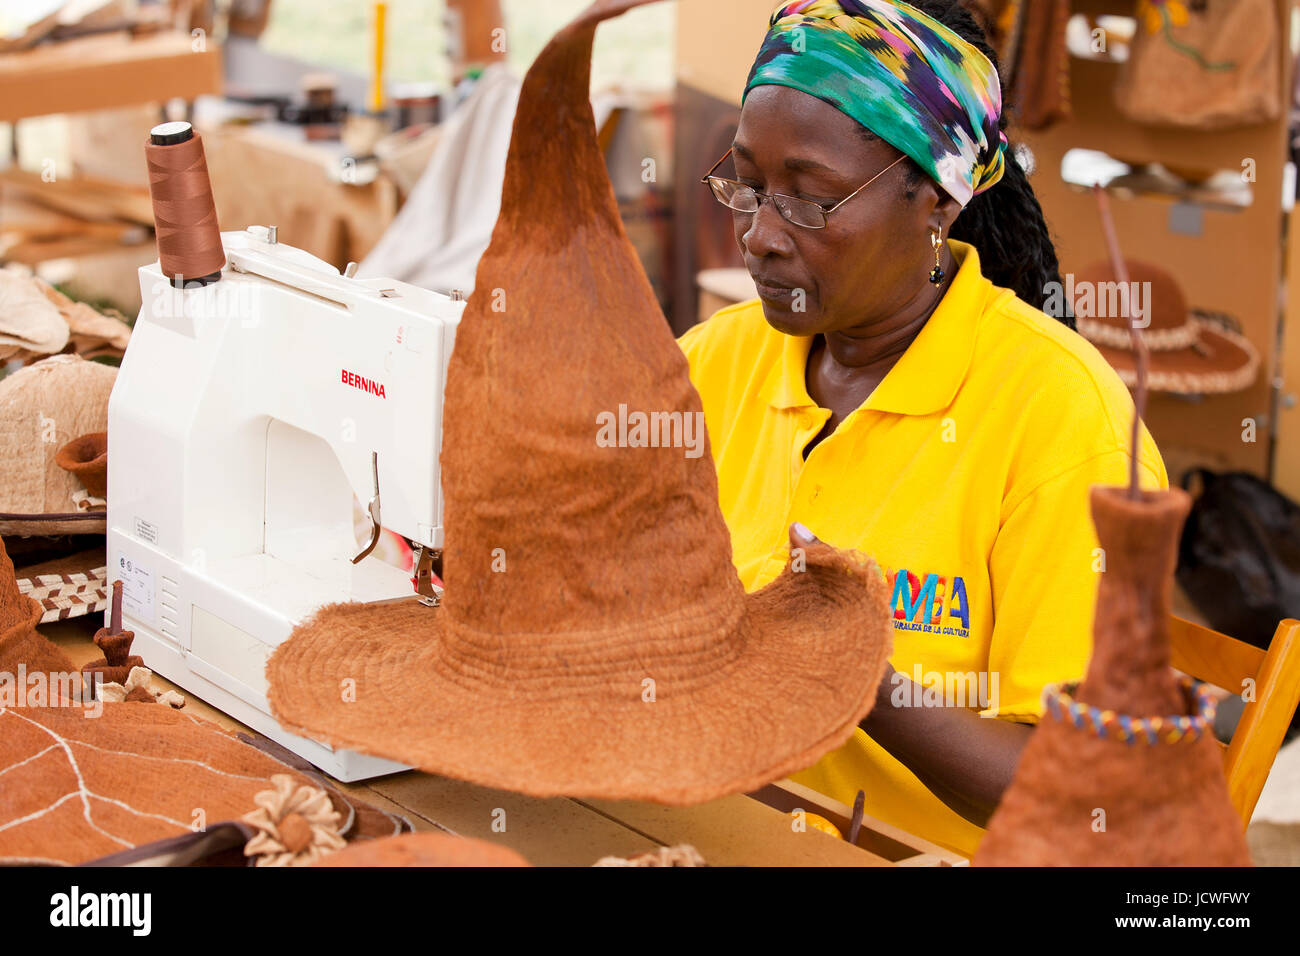 Afro-Colombian woman hat maker working with a sewing machine, using coconut fiber (coir) - USA - Stock Image